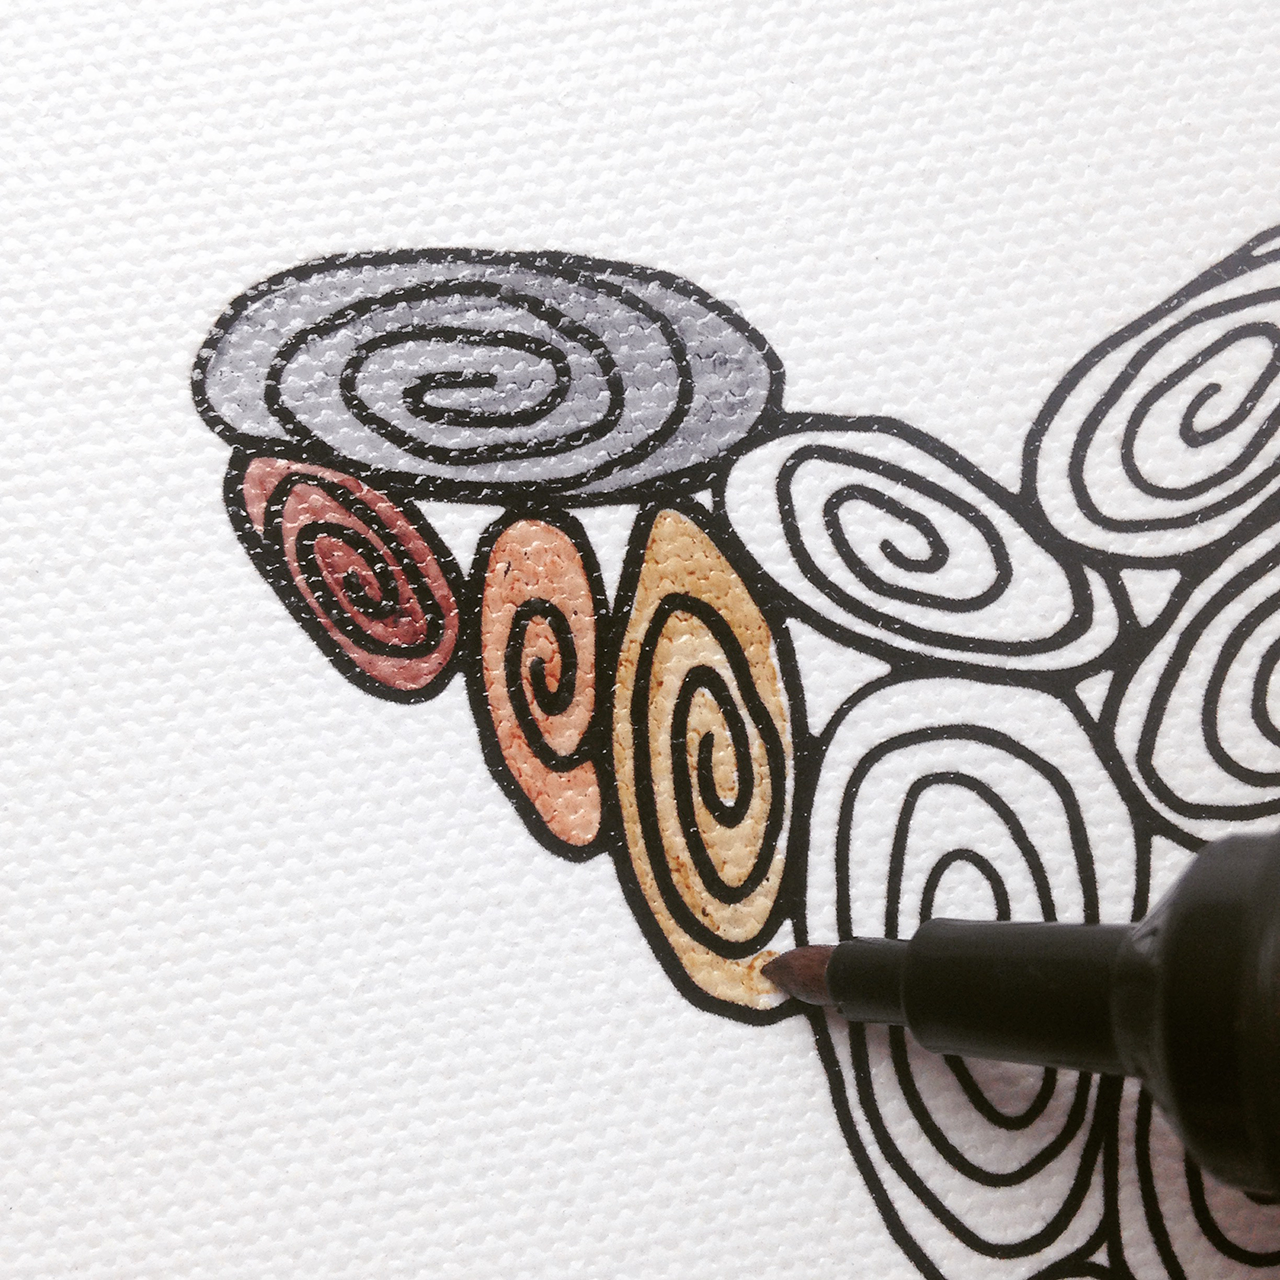 A pen coloring in a swirl on the Marin 100 Swirl Creative Progress Map from the Creature Collection